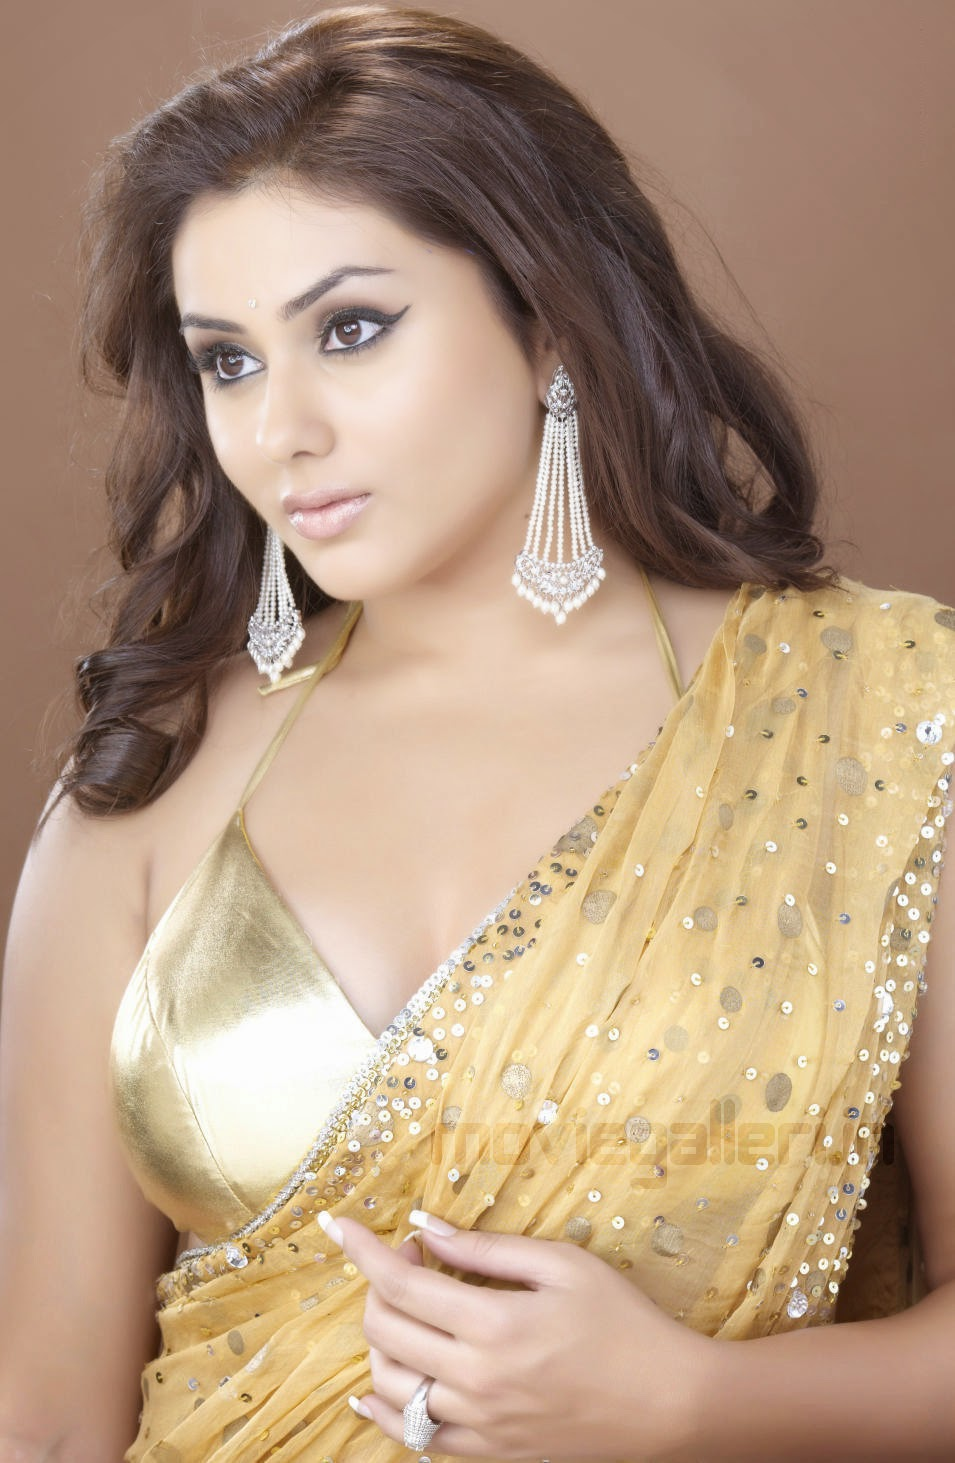 Shahnaz online photo gallery best namitha hot hd wallpapers for Best online photo gallery